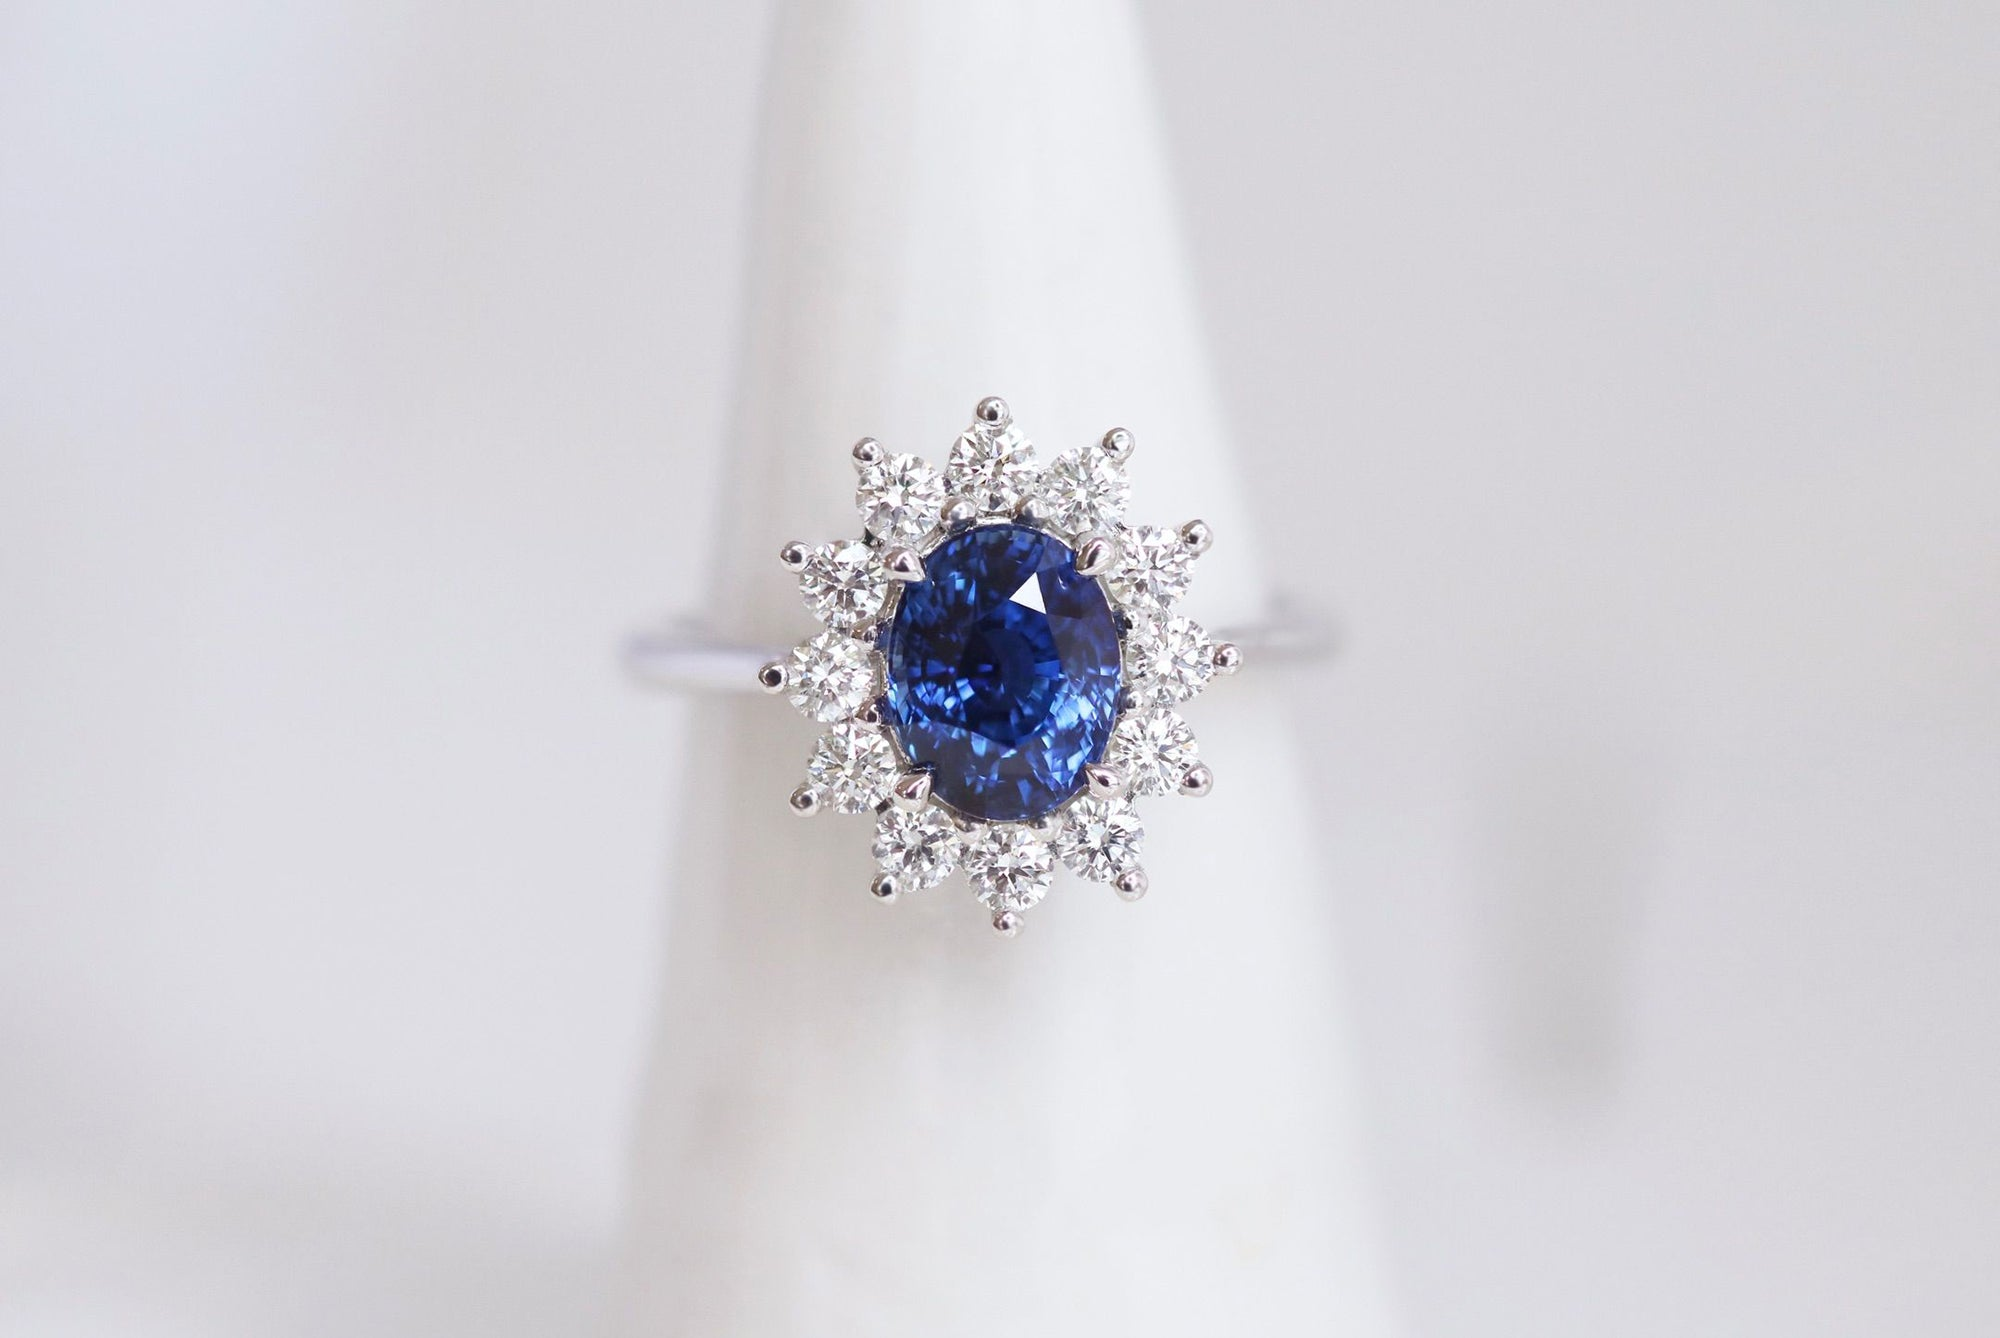 White Gold Engagement Ring with Ceylon Sapphire and diamond halo